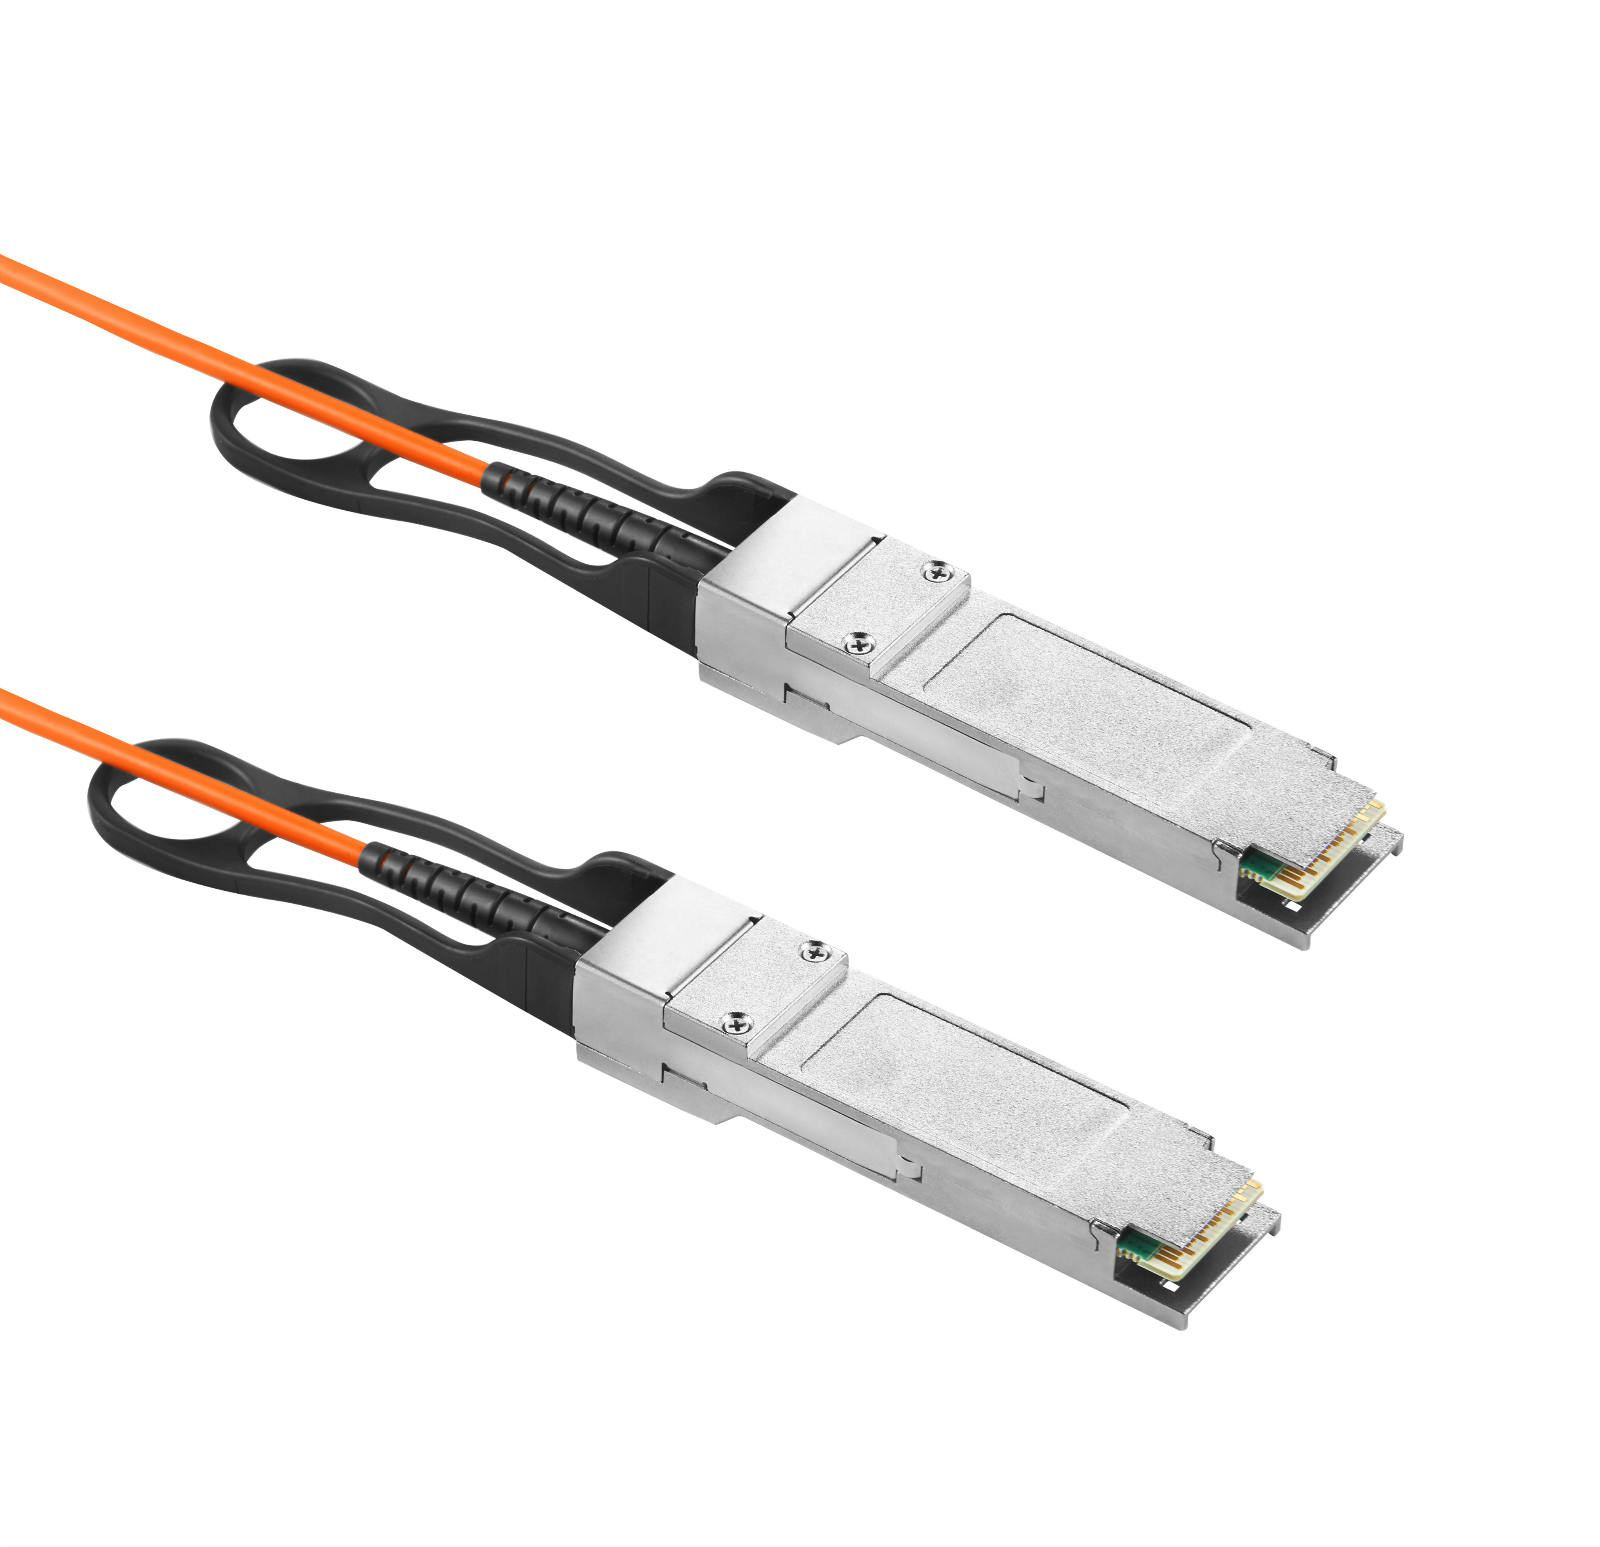 HTD-Infor focus on AOC Cable, is a well-known brands of Cab